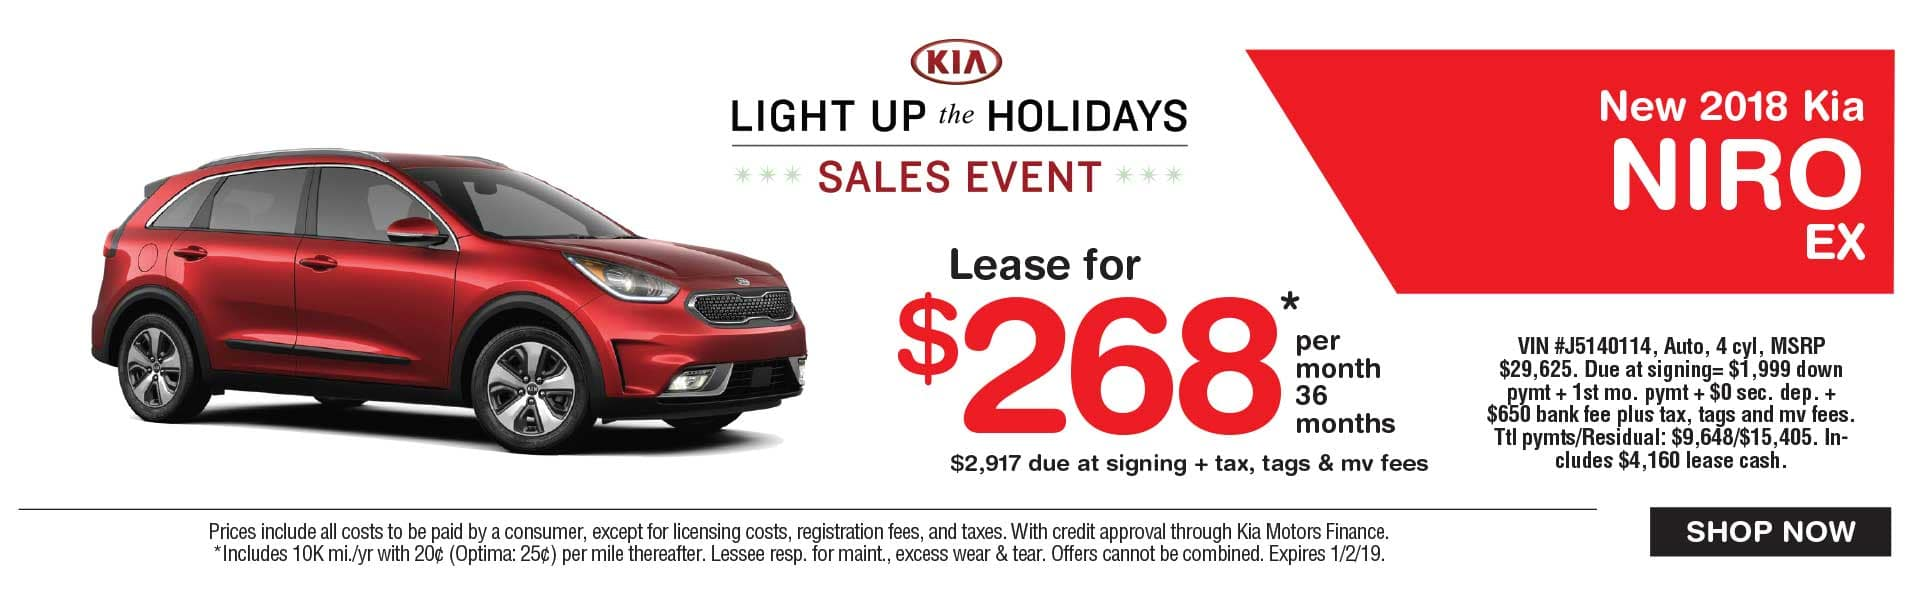 Kia Niro lease savings at Global Kia